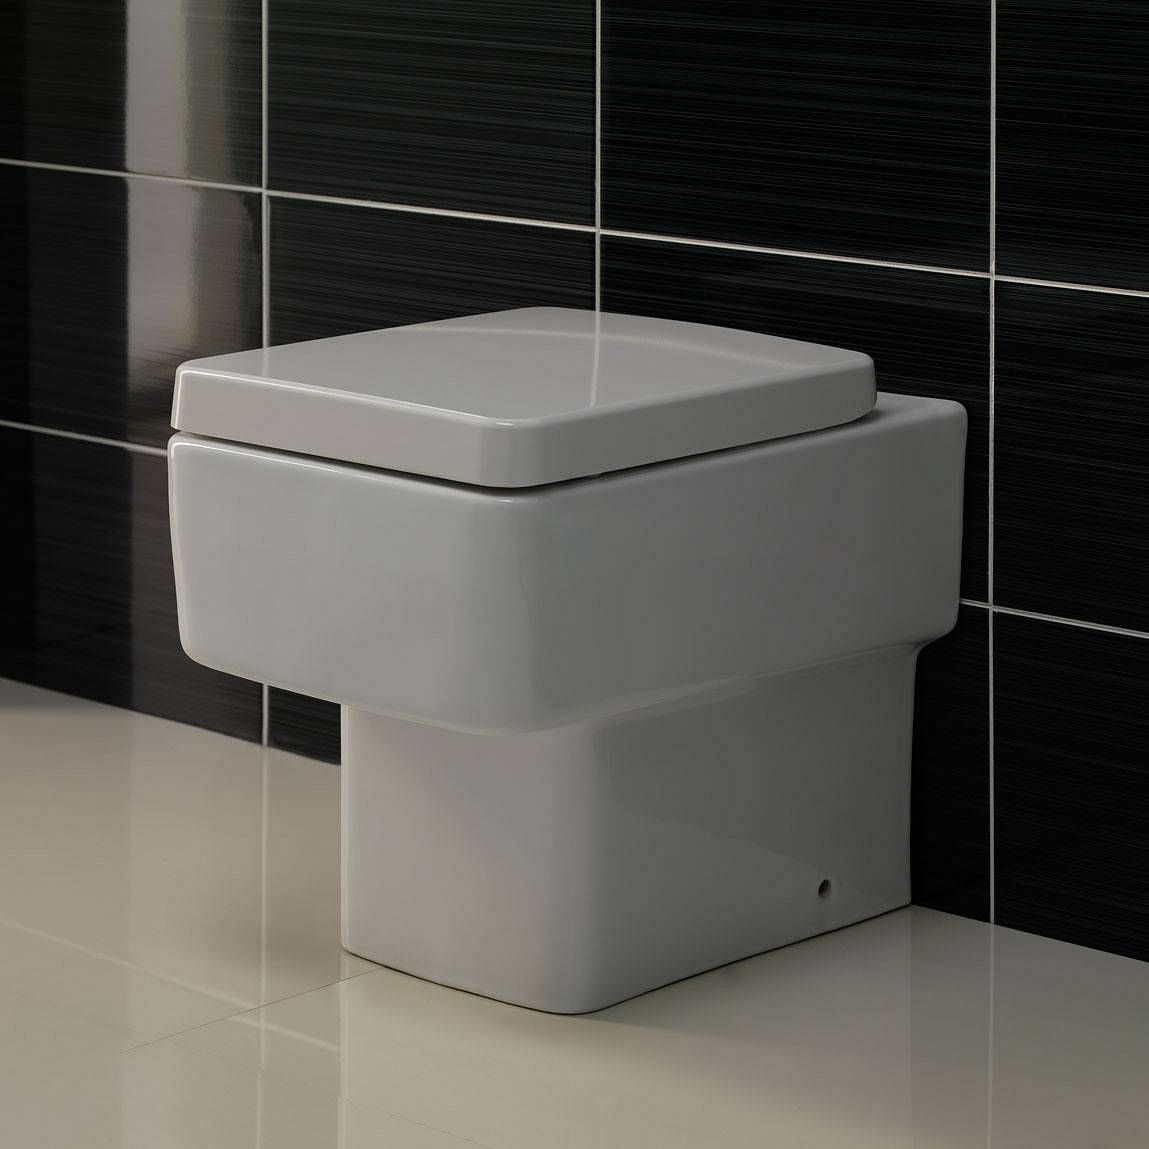 Chase+Back+To+Wall+Toilet+inc+Seat Victoria Plumb £129 | Toilet ...